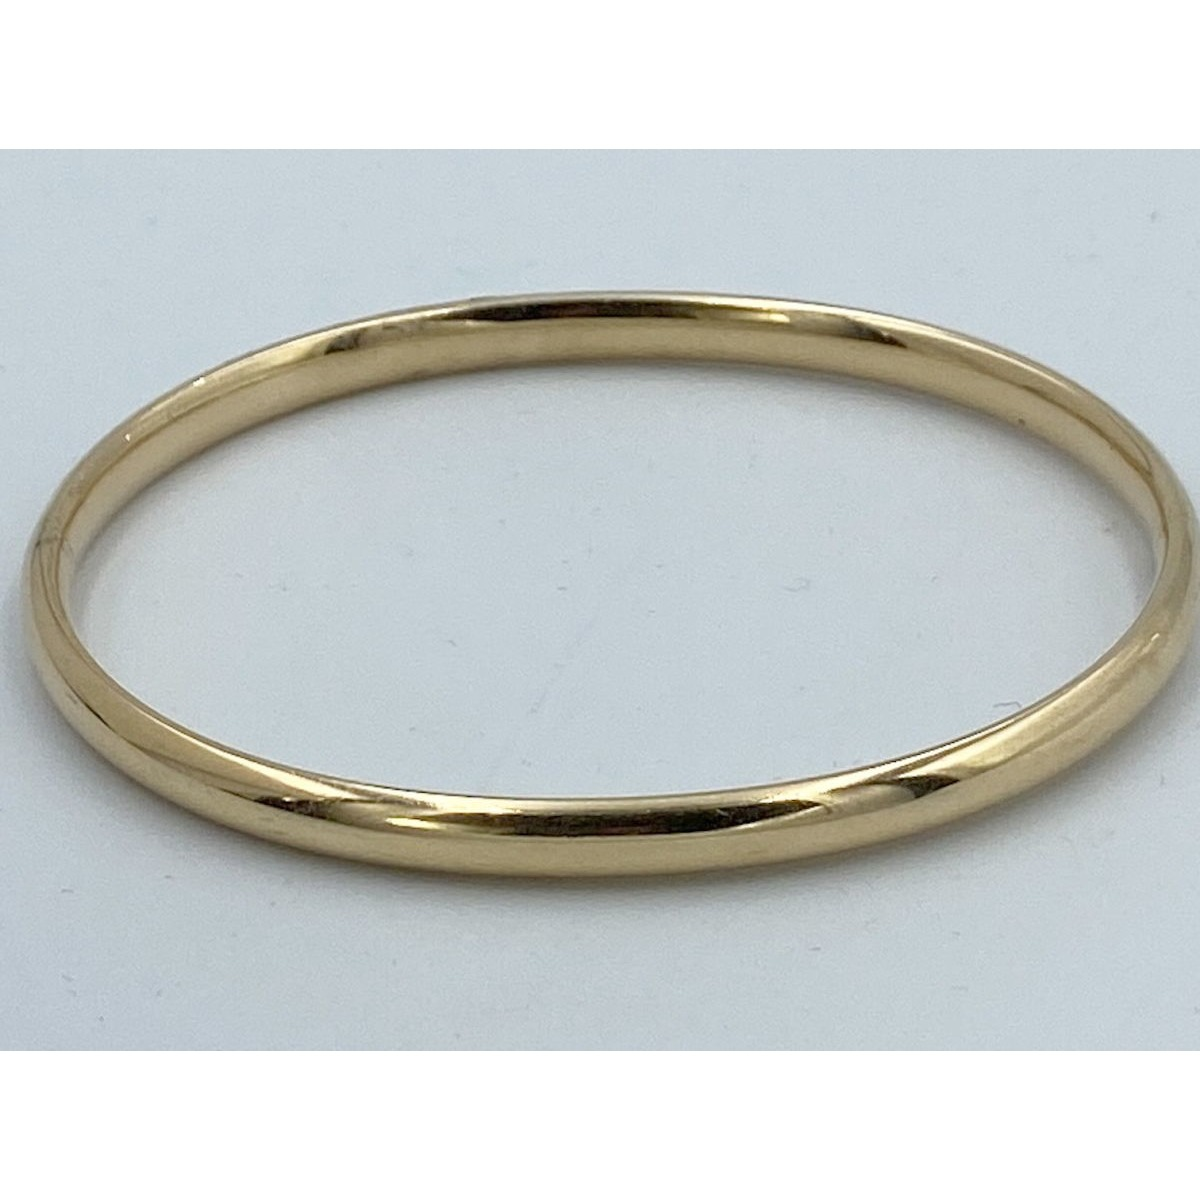 Wonderful Hinged, Buttery Yellow Small Antique 14kt Gold Bangle